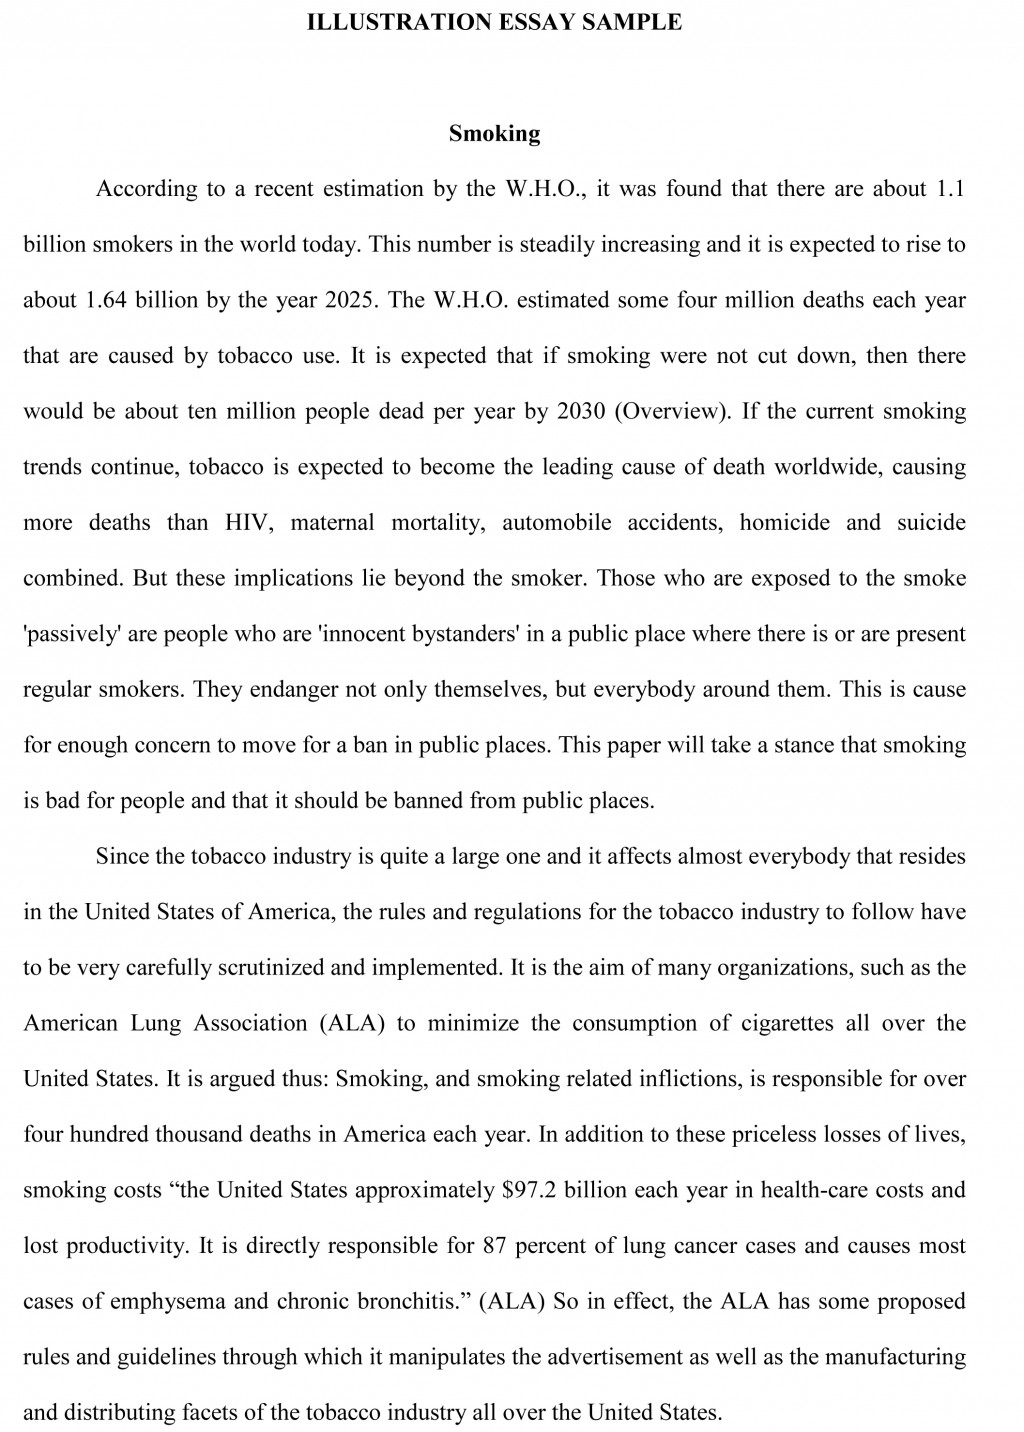 003 Writing Essay Illustration Sample Striking A Creative About Yourself College Outline 5 Steps To Large